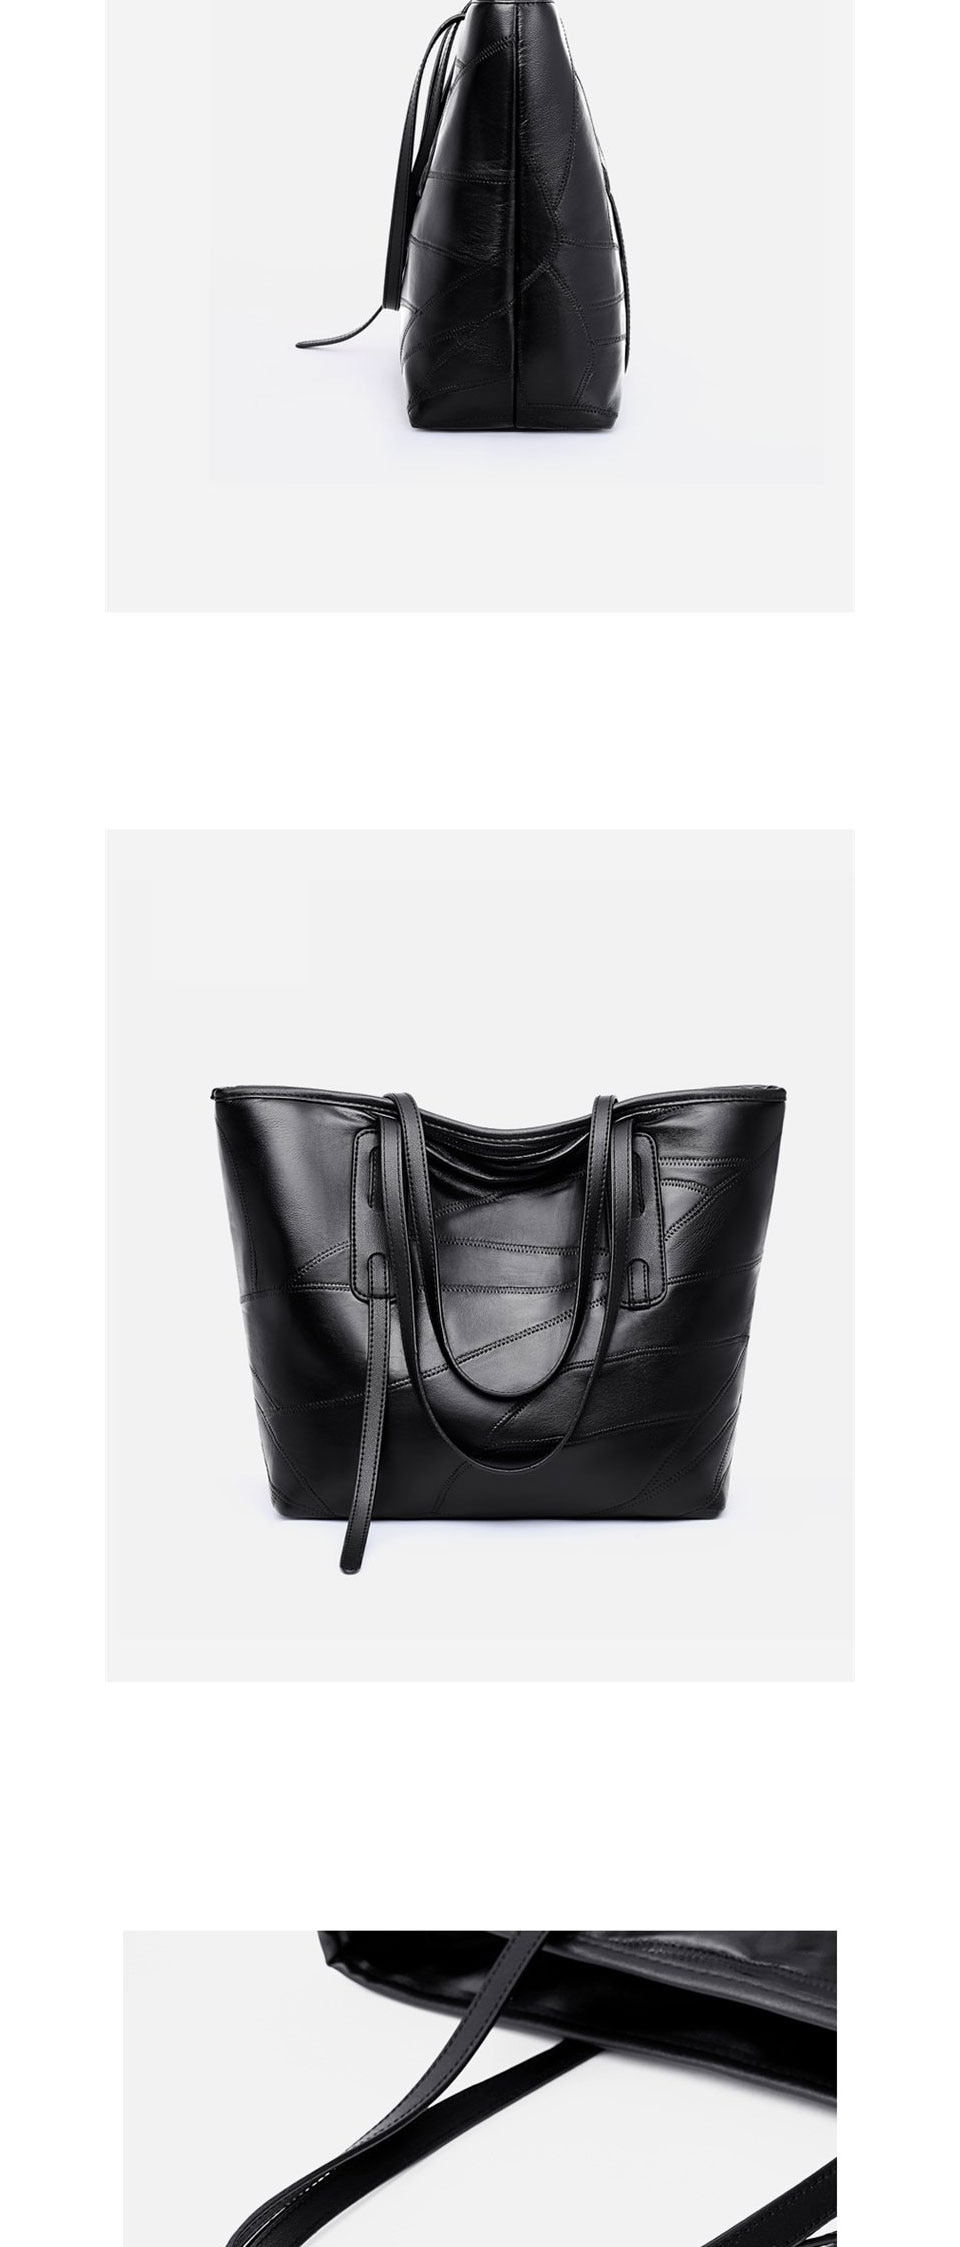 ACELURE Solid Colour High Capacity Casual Tote Bag